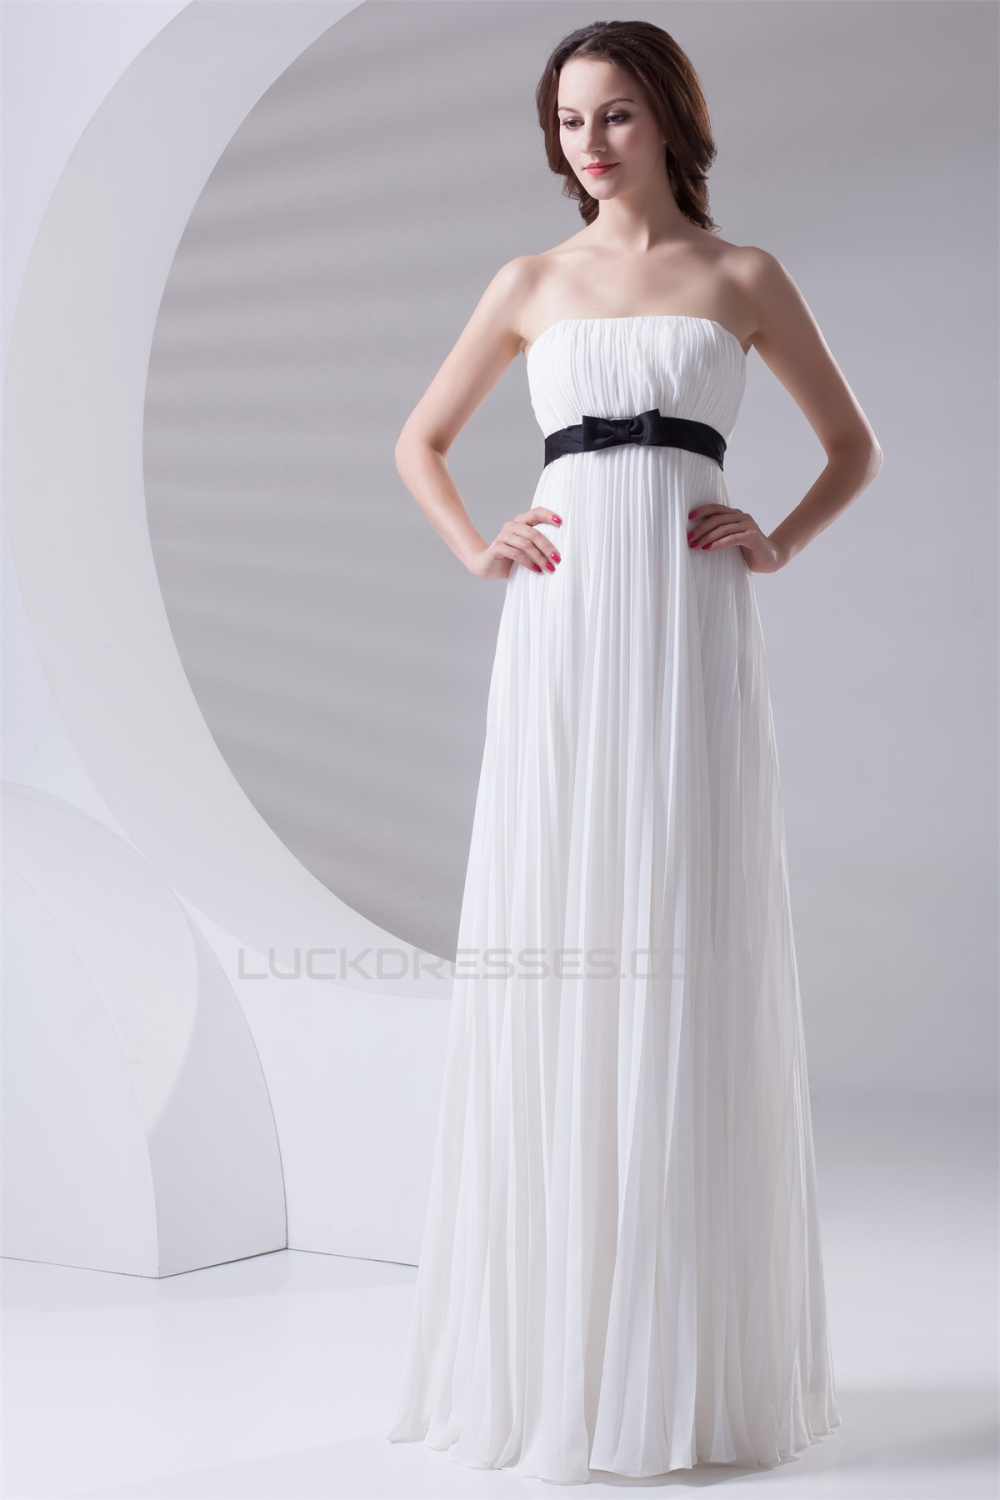 Empire Strapless Long White Chiffon Bridesmaid Dresses